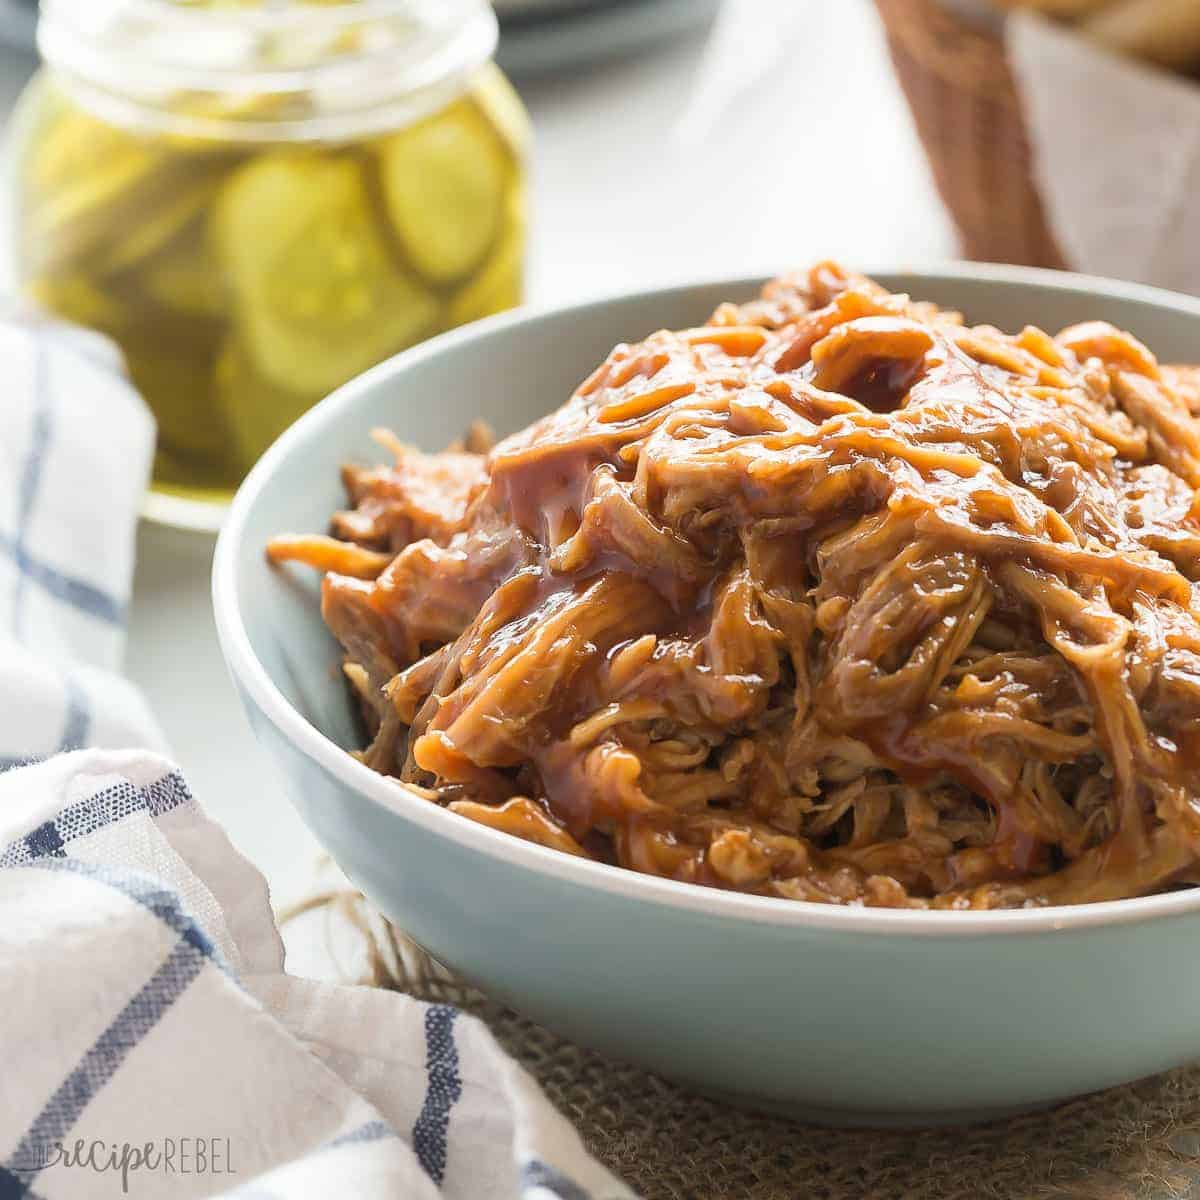 This easy Slow Cooker Pineapple Brown Sugar Pulled Pork recipe is smothered in homemade pineapple brown sugar barbecue sauce! Sweet, tangy and so tender! https://www.thereciperebel.com/slow-cooker-pineapple-brown-sugar-pulled-pork/